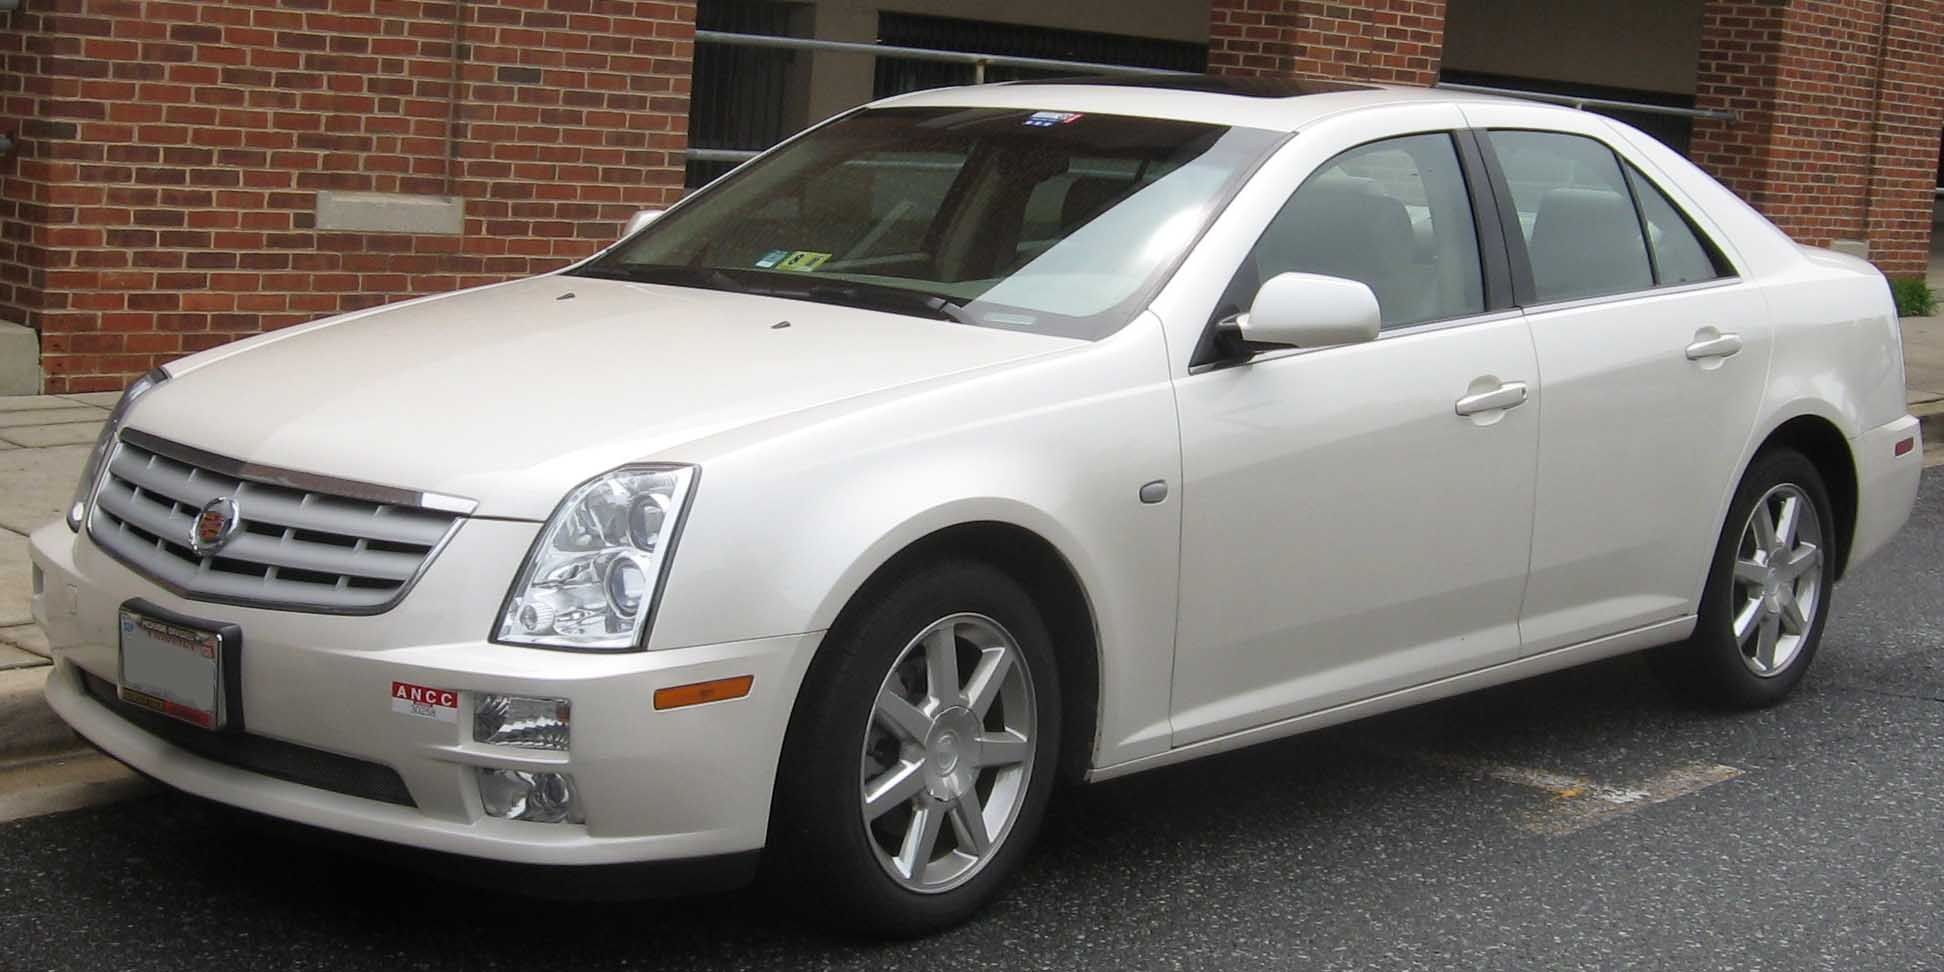 cadillac sts images #6